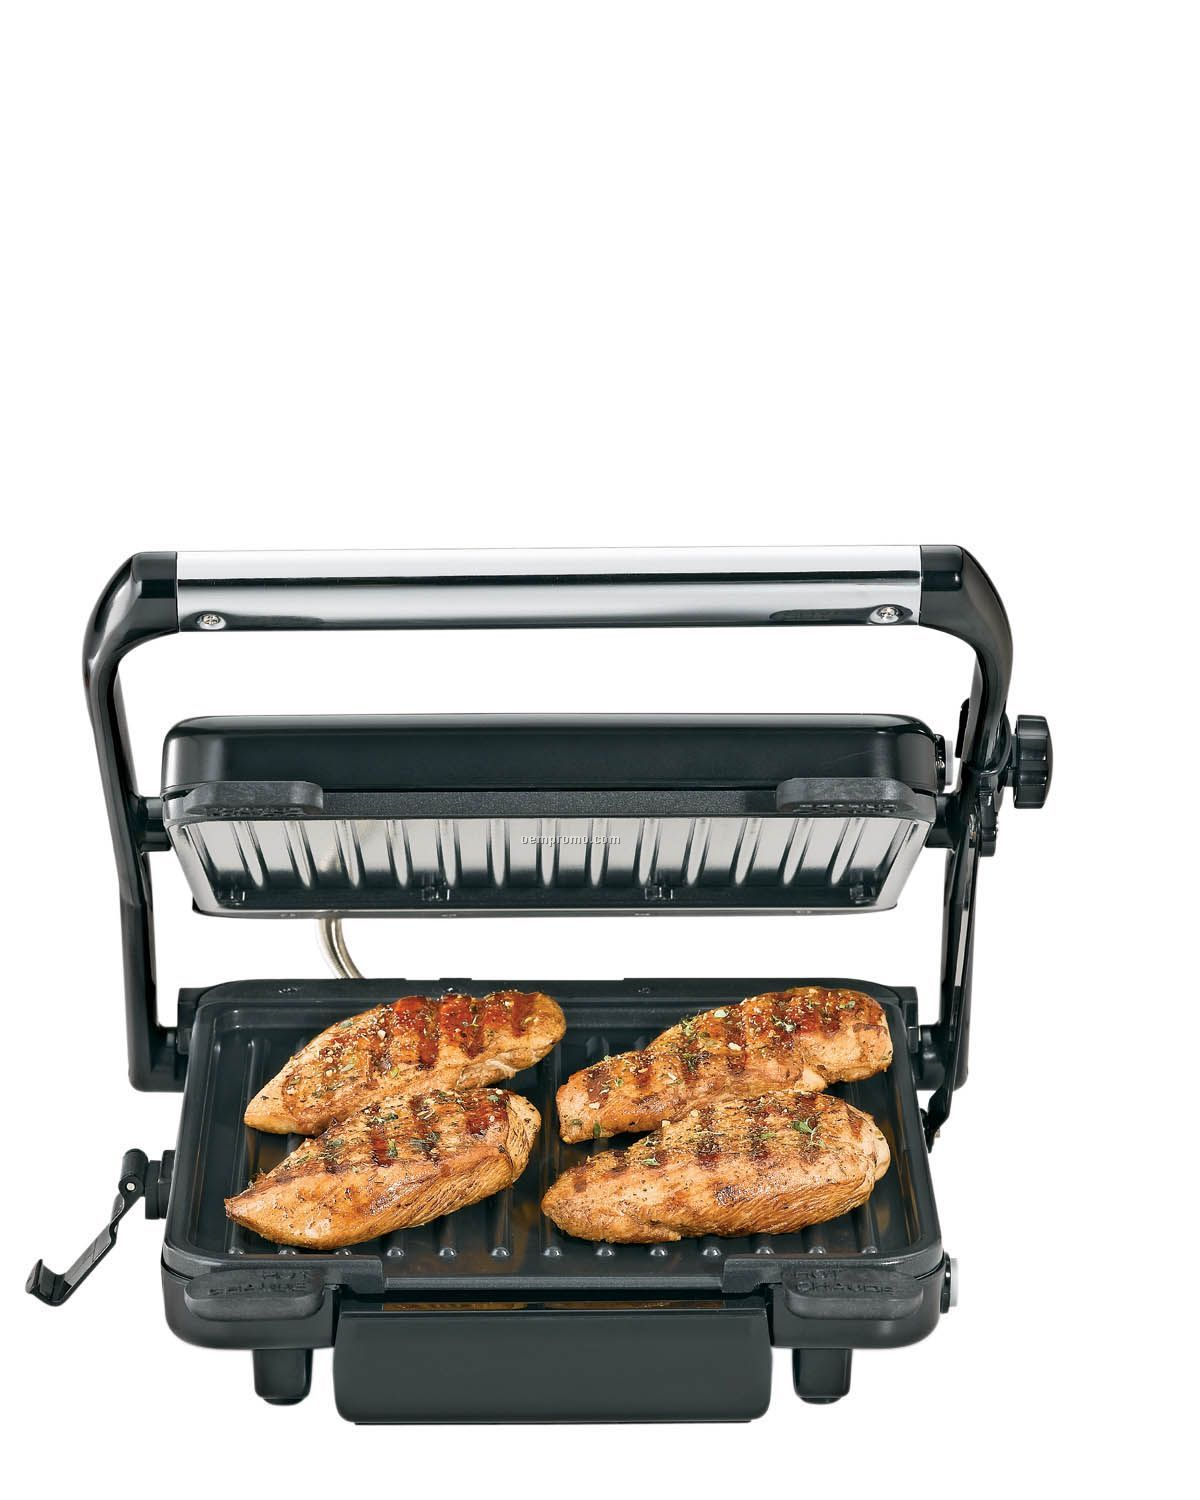 Hamilton Beach 85 Sq. In. Indoor Grill